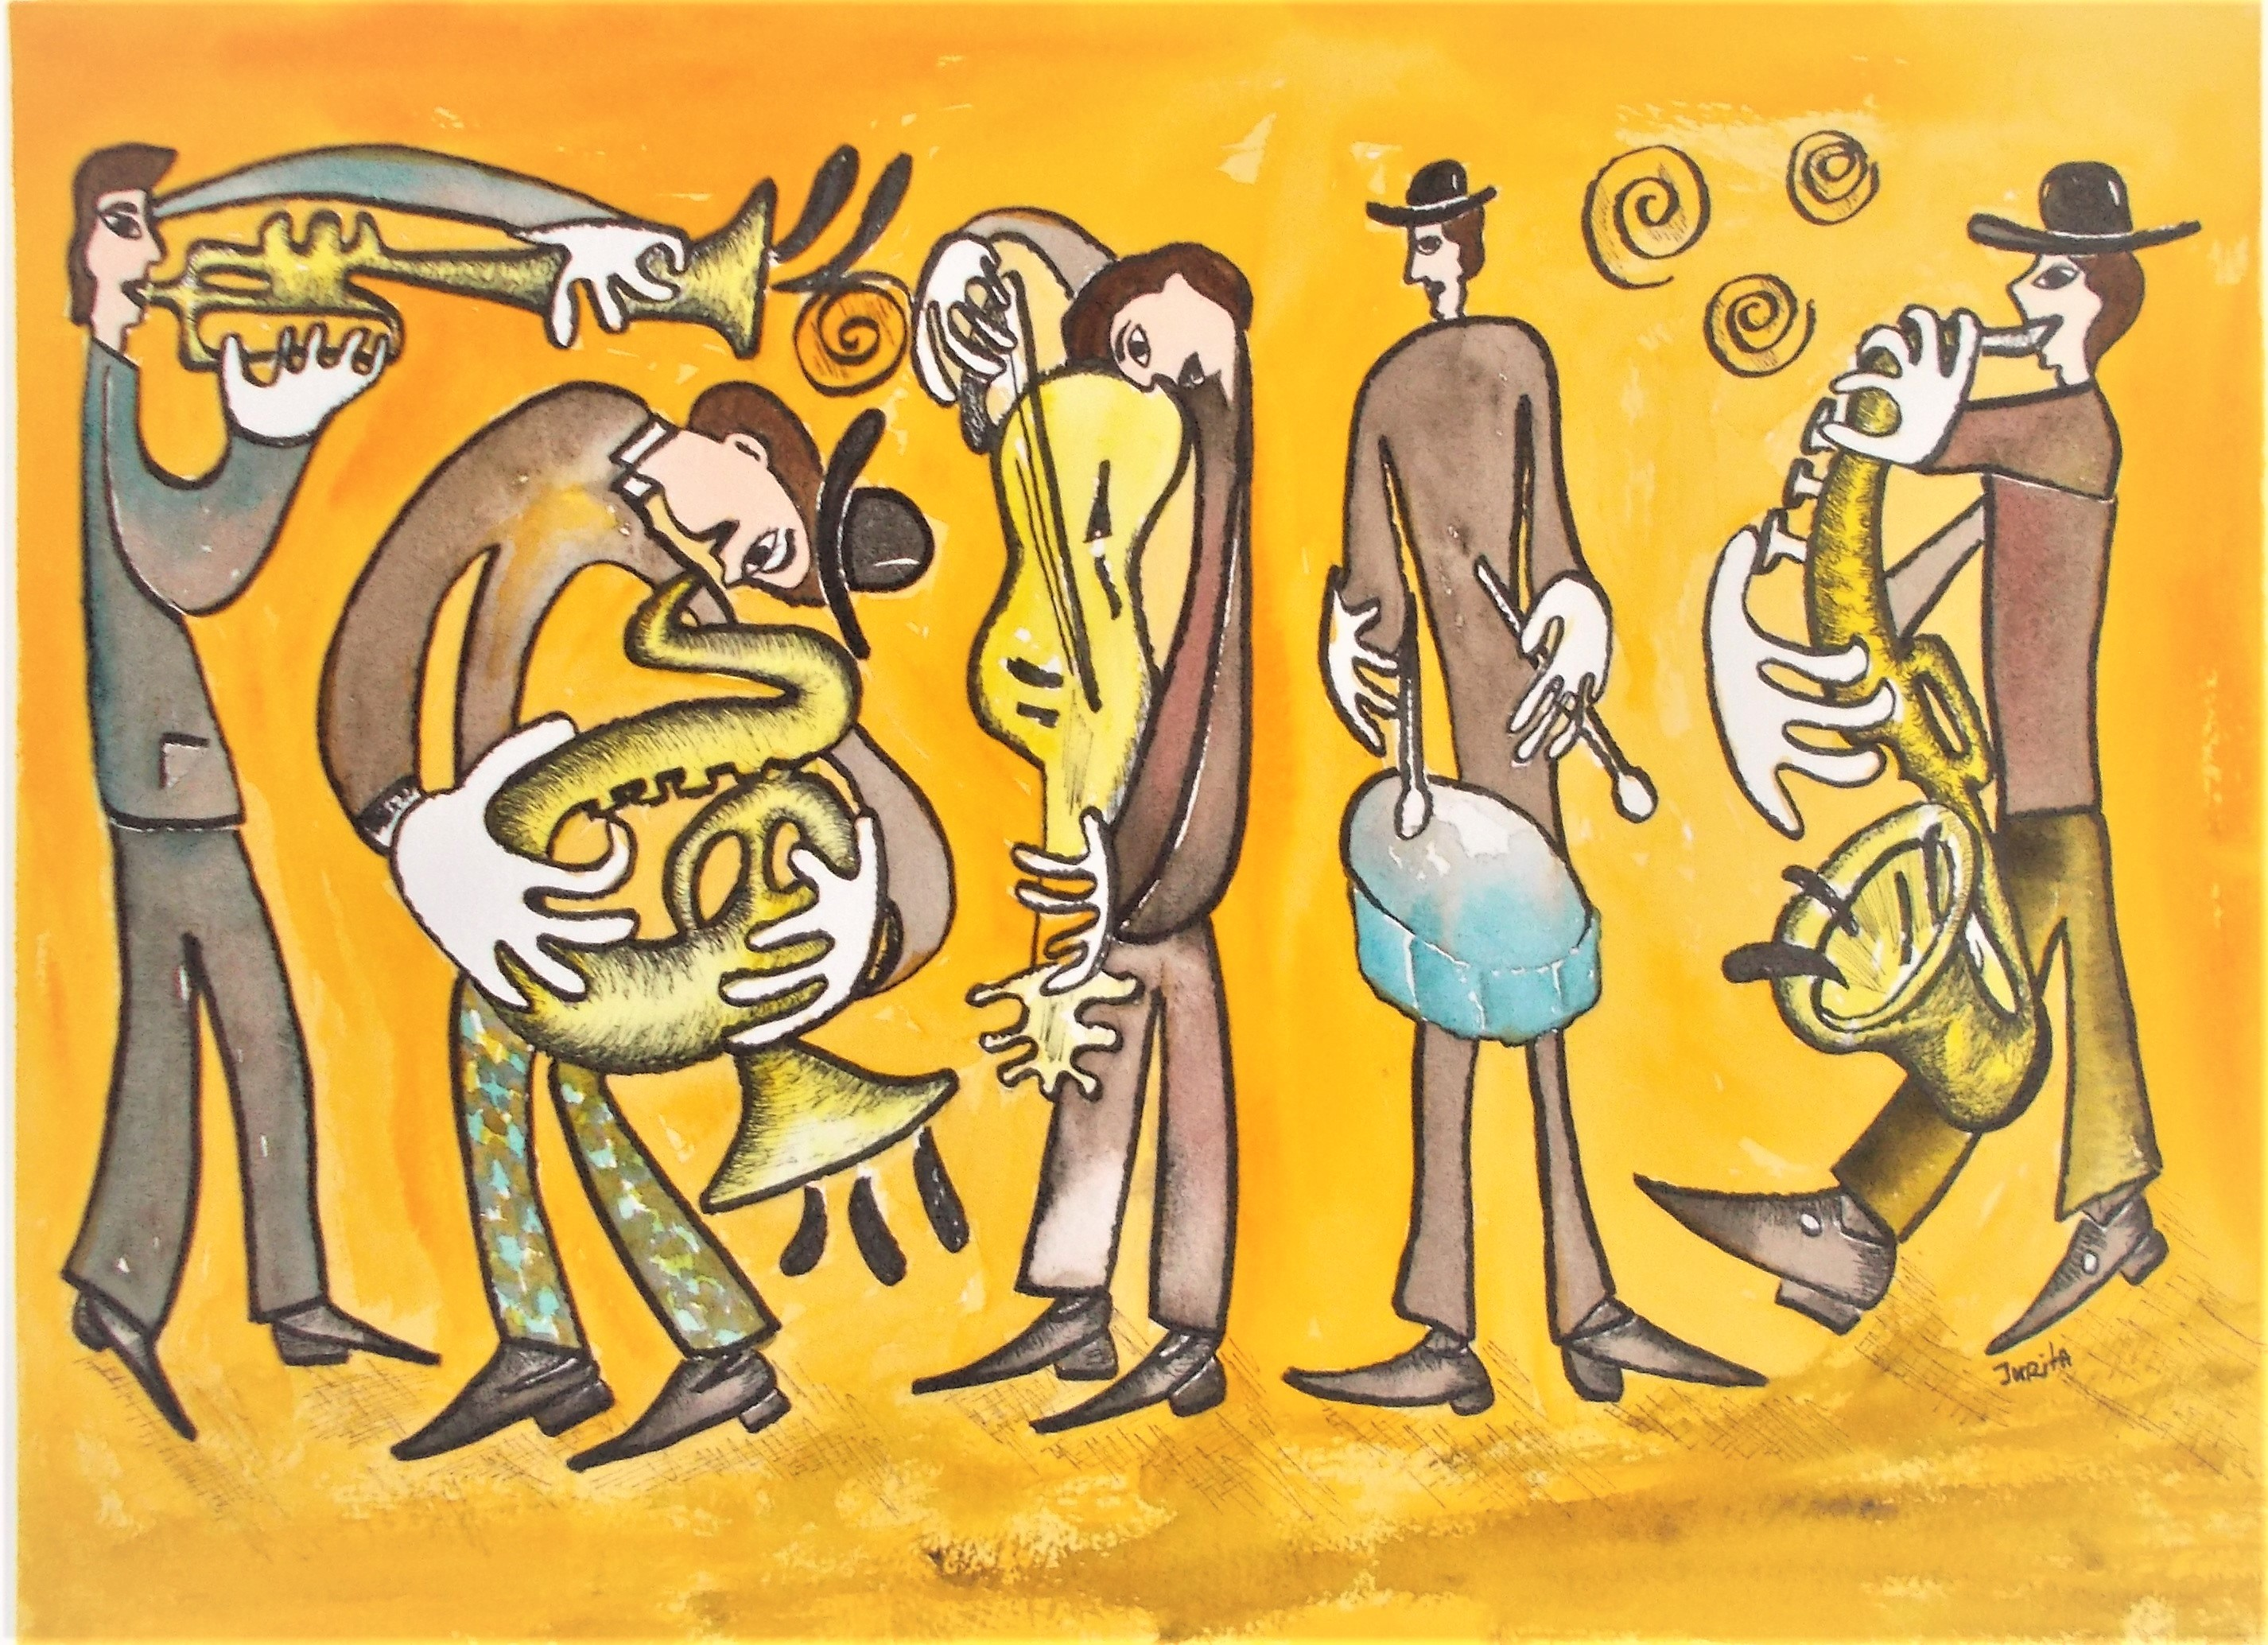 Jazz Band, Jurita Kalite, 2017, Watercolor, 31 x 41 см